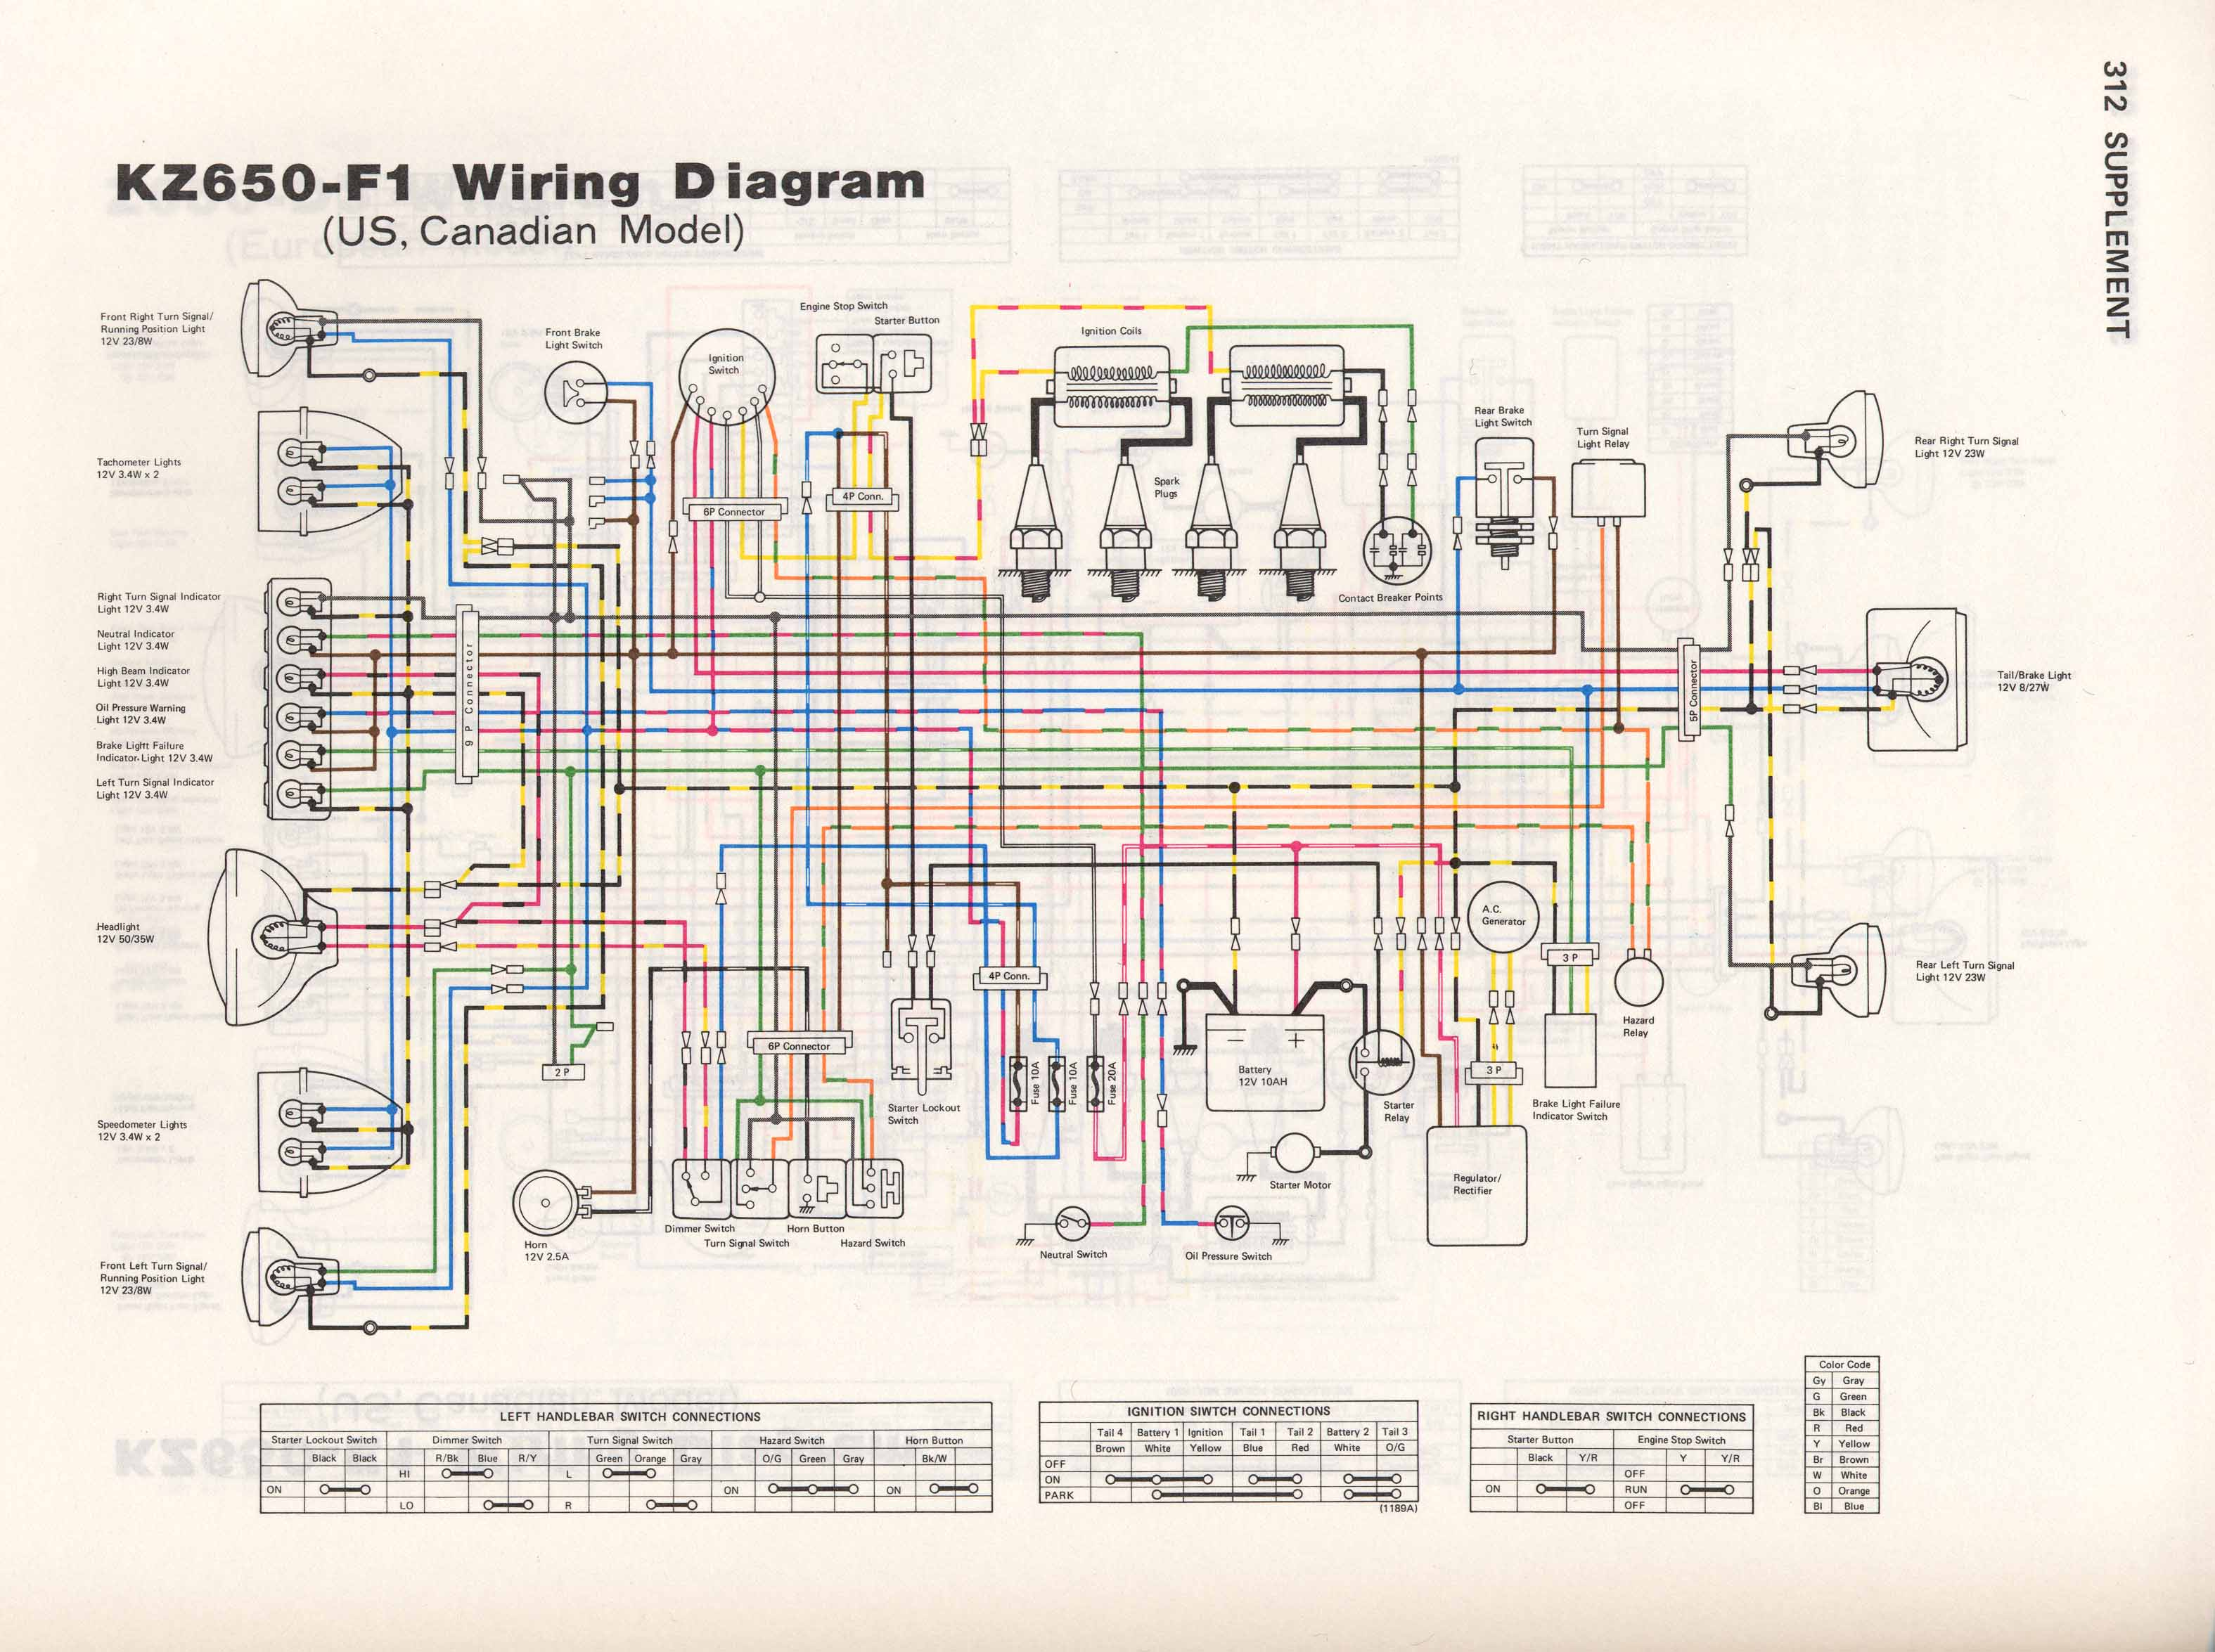 KZ650 F1 kz650 info wiring diagrams kz750 wiring diagram at crackthecode.co